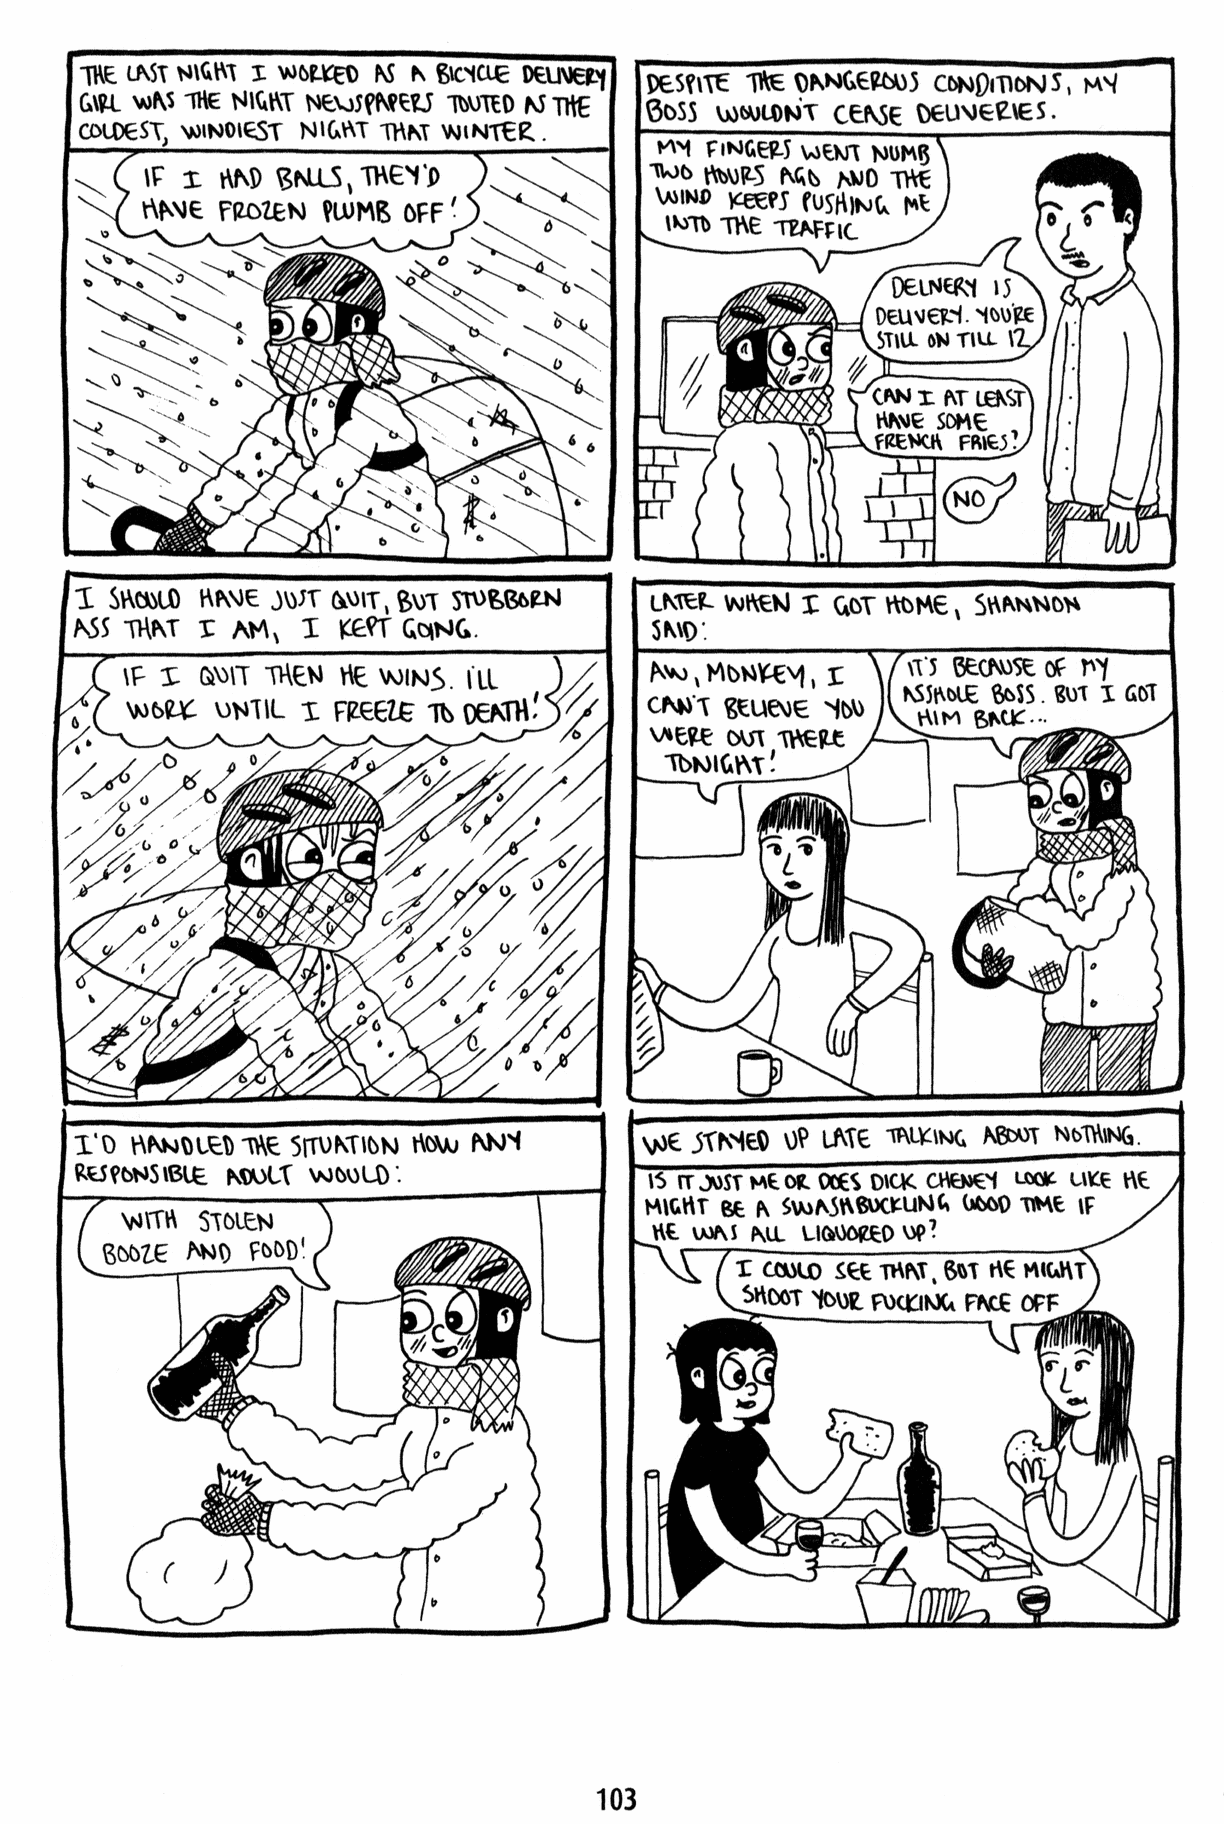 Read online Drinking at the Movies comic -  Issue # Full - 105